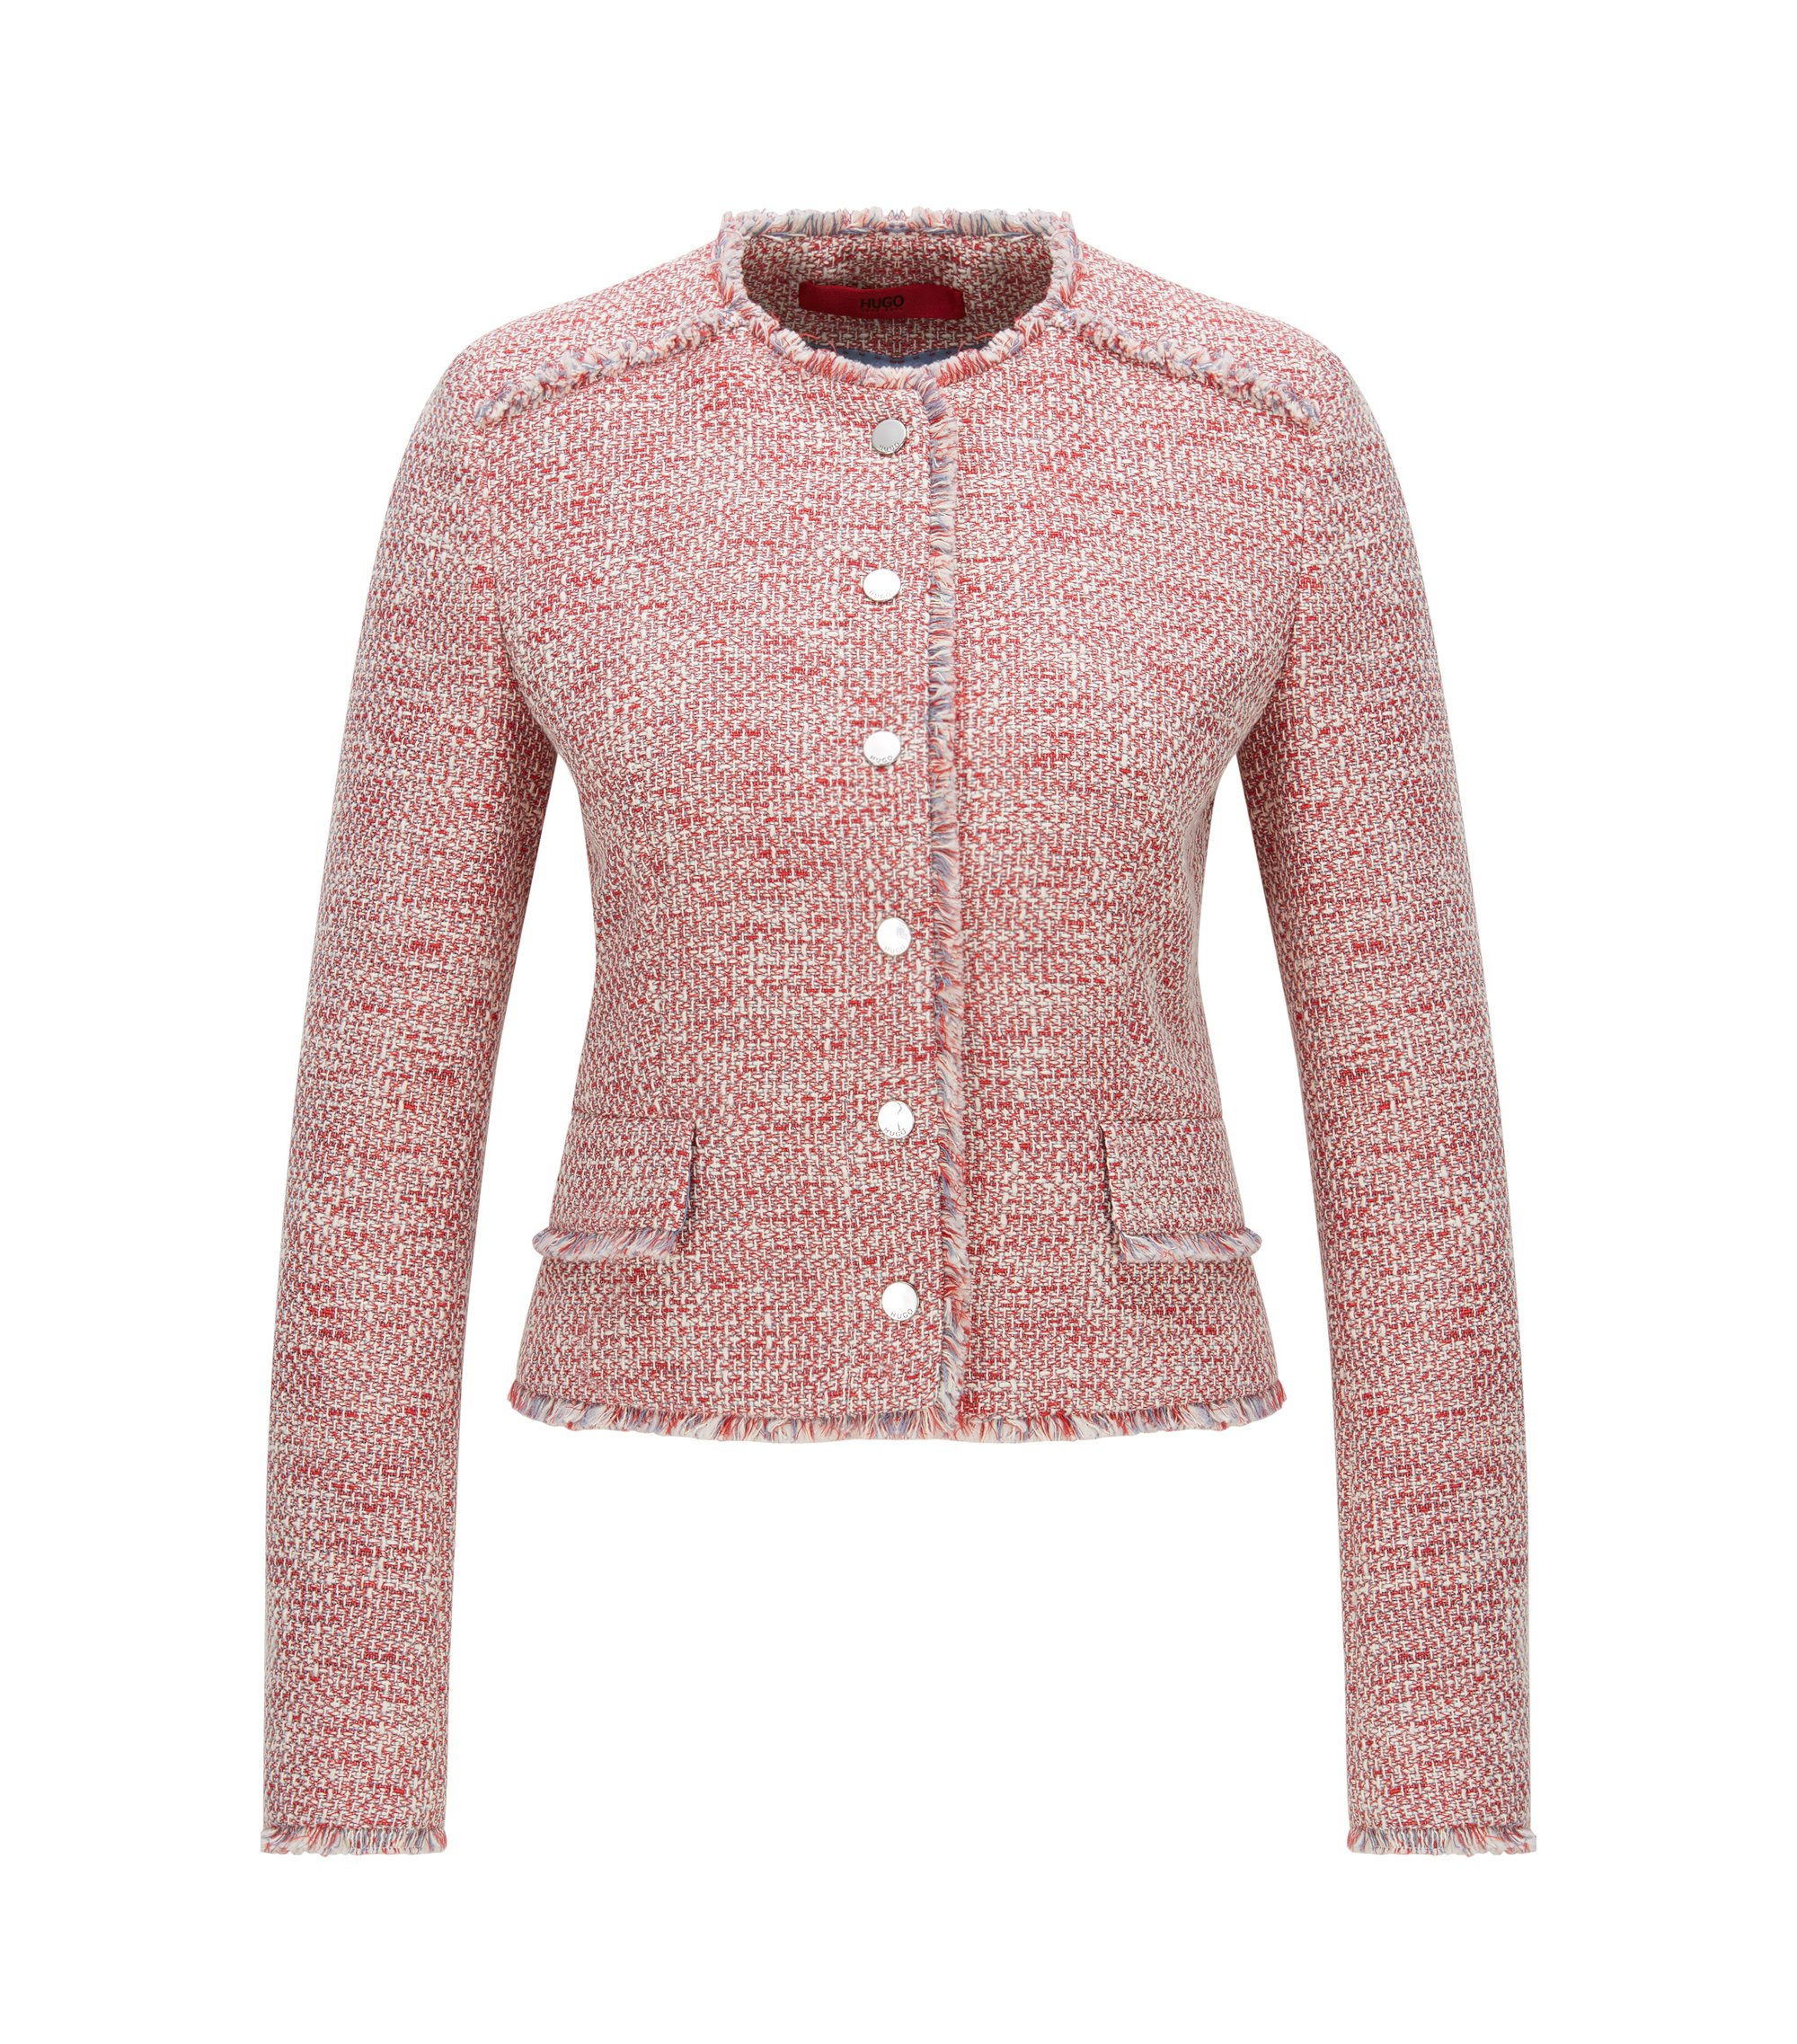 Regular-fit jacket in cotton-blend tweed, Patterned